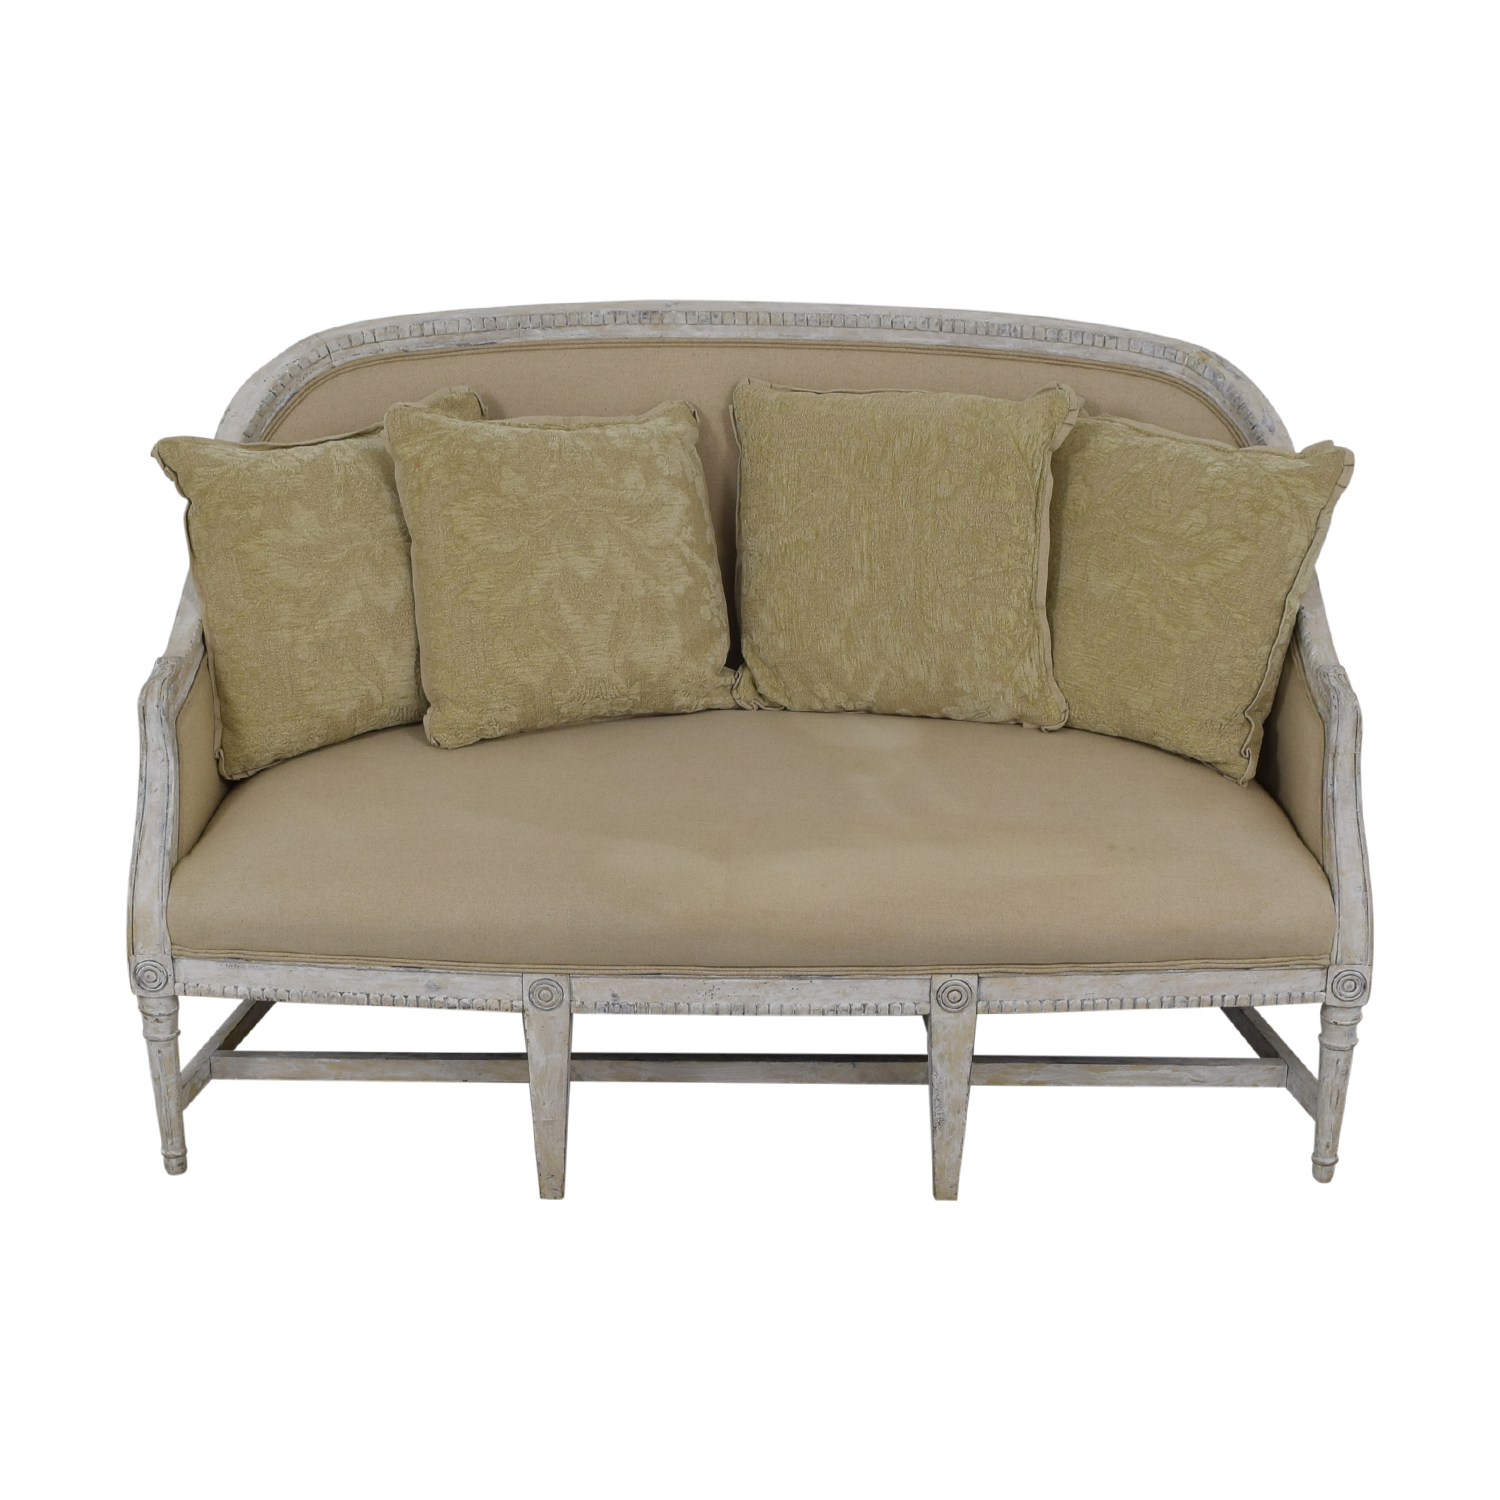 Horchow Horchow Alysa Settee dimensions